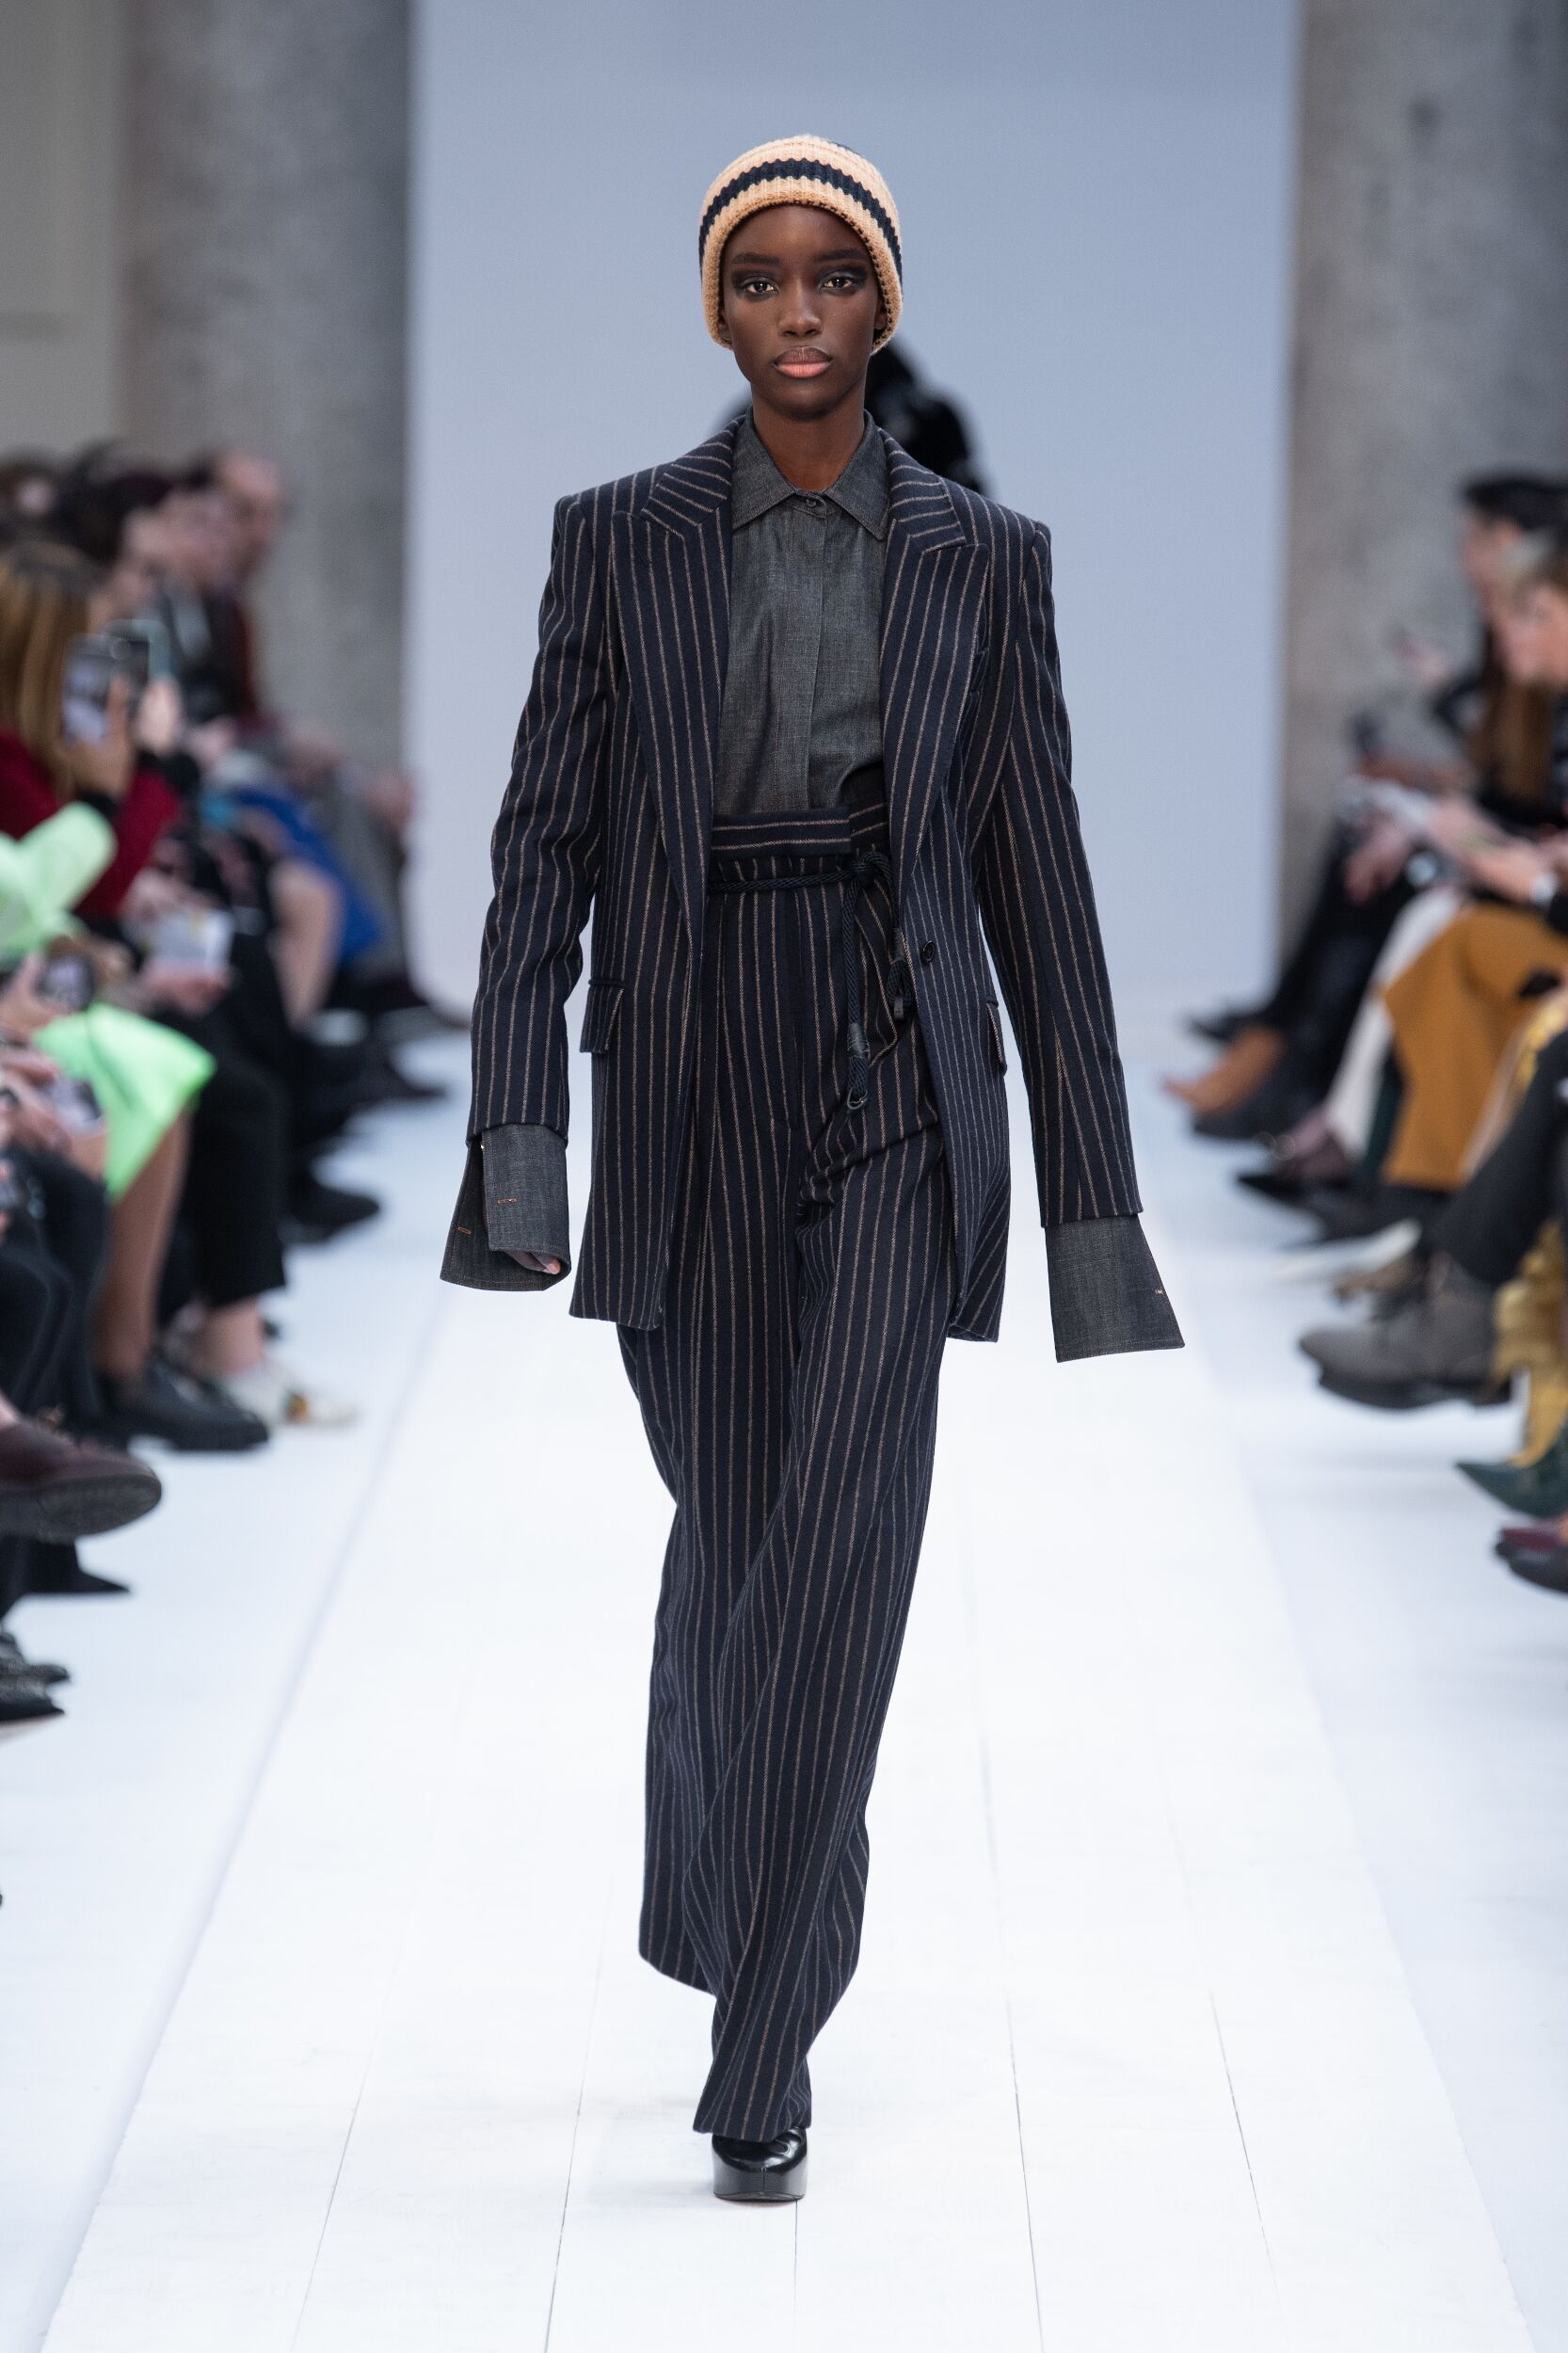 FW 2020-21 Fashion Show Max Mara